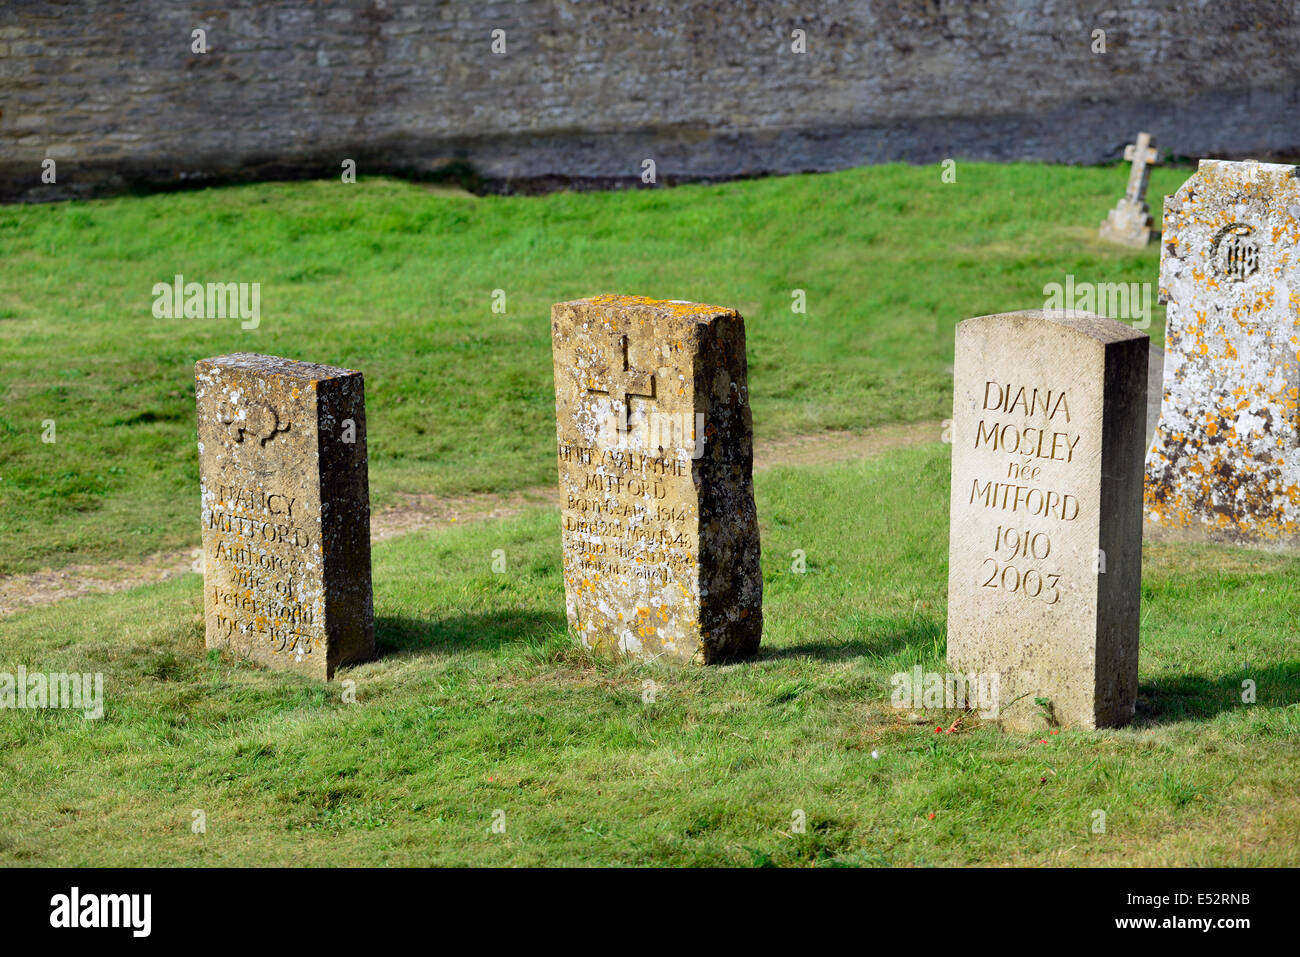 Graves of the three Mitford sisters (Nancy, Unity & Diana)  in Swinbrook Churchyard Oxfordshire. - Stock Image